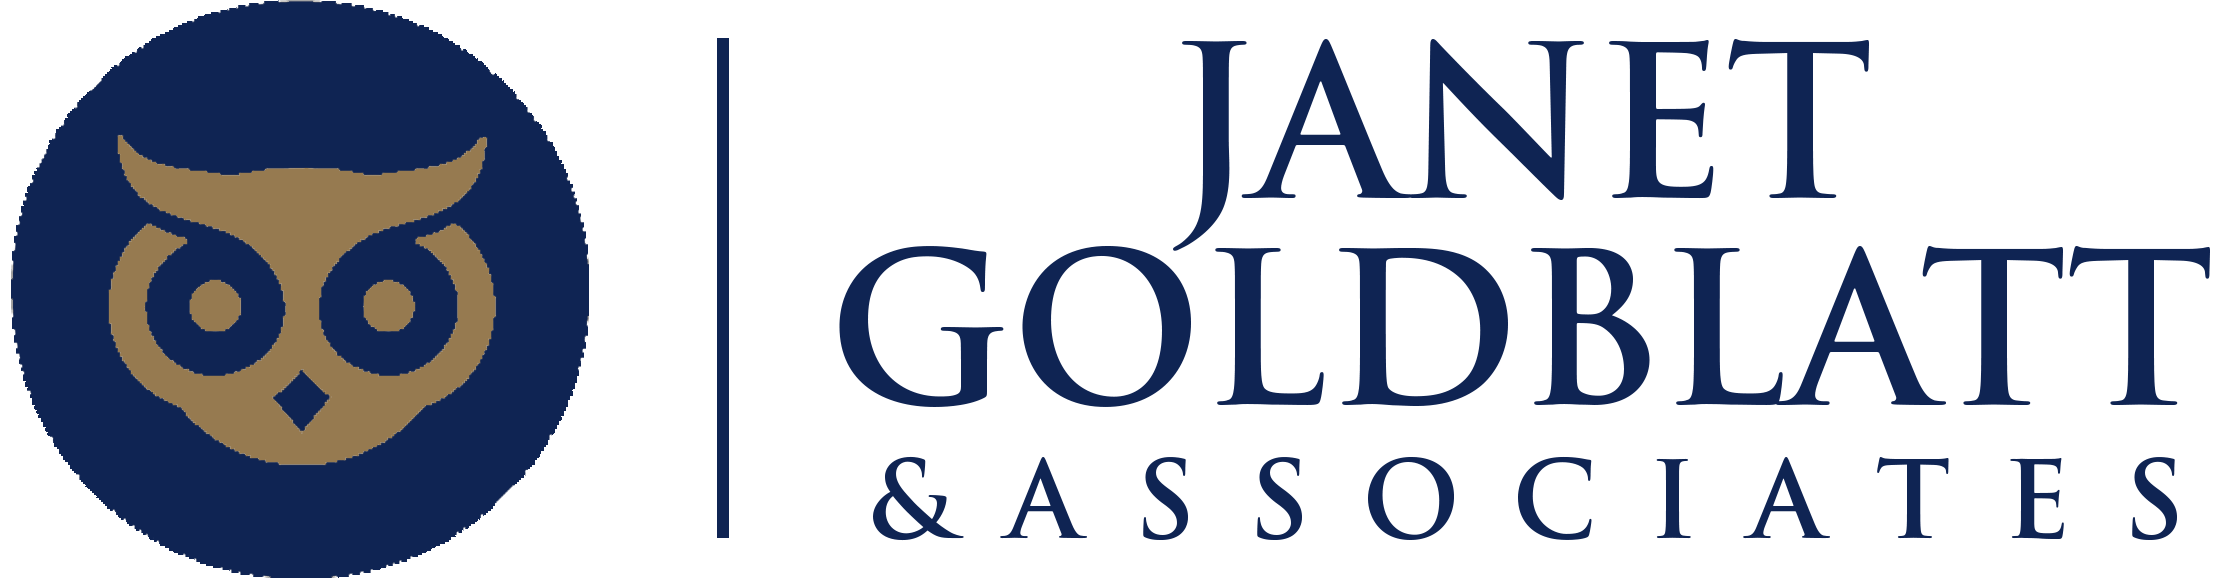 Janet Goldblatt & Associates